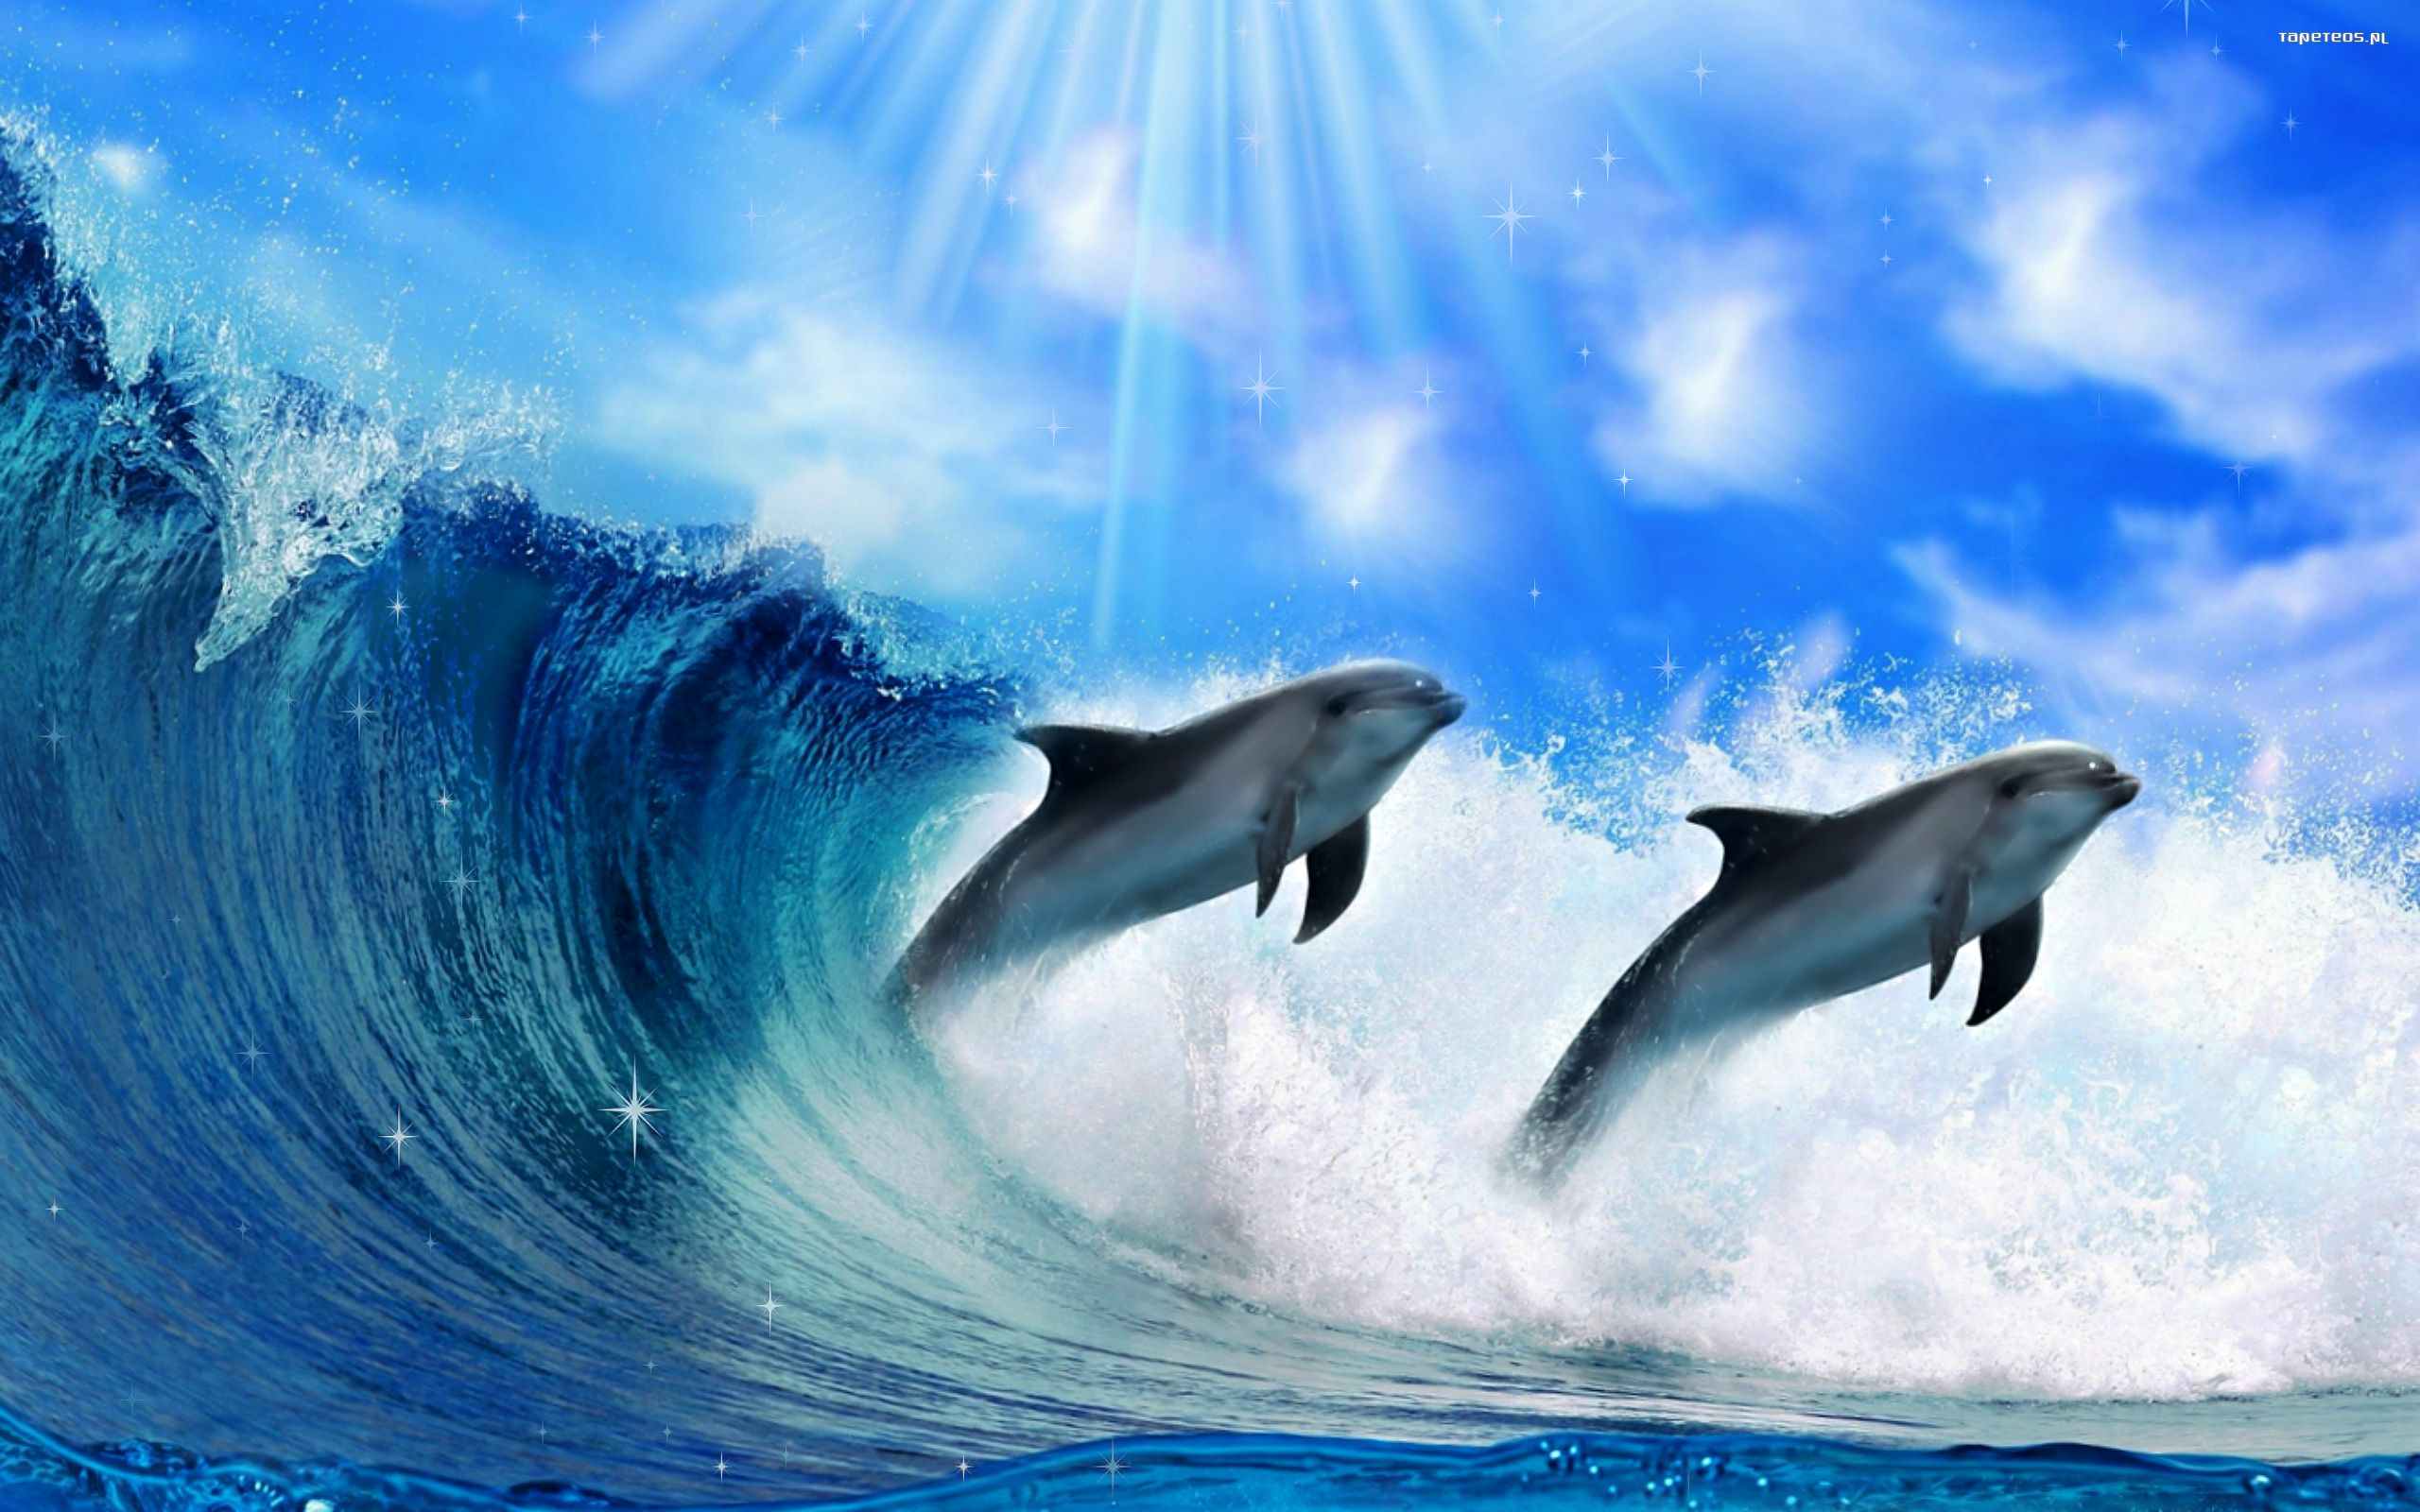 3d Dolphin Wallpaper For Windows 7 Delfin 2560x1600 004 Fala Tapety Na Pulpit